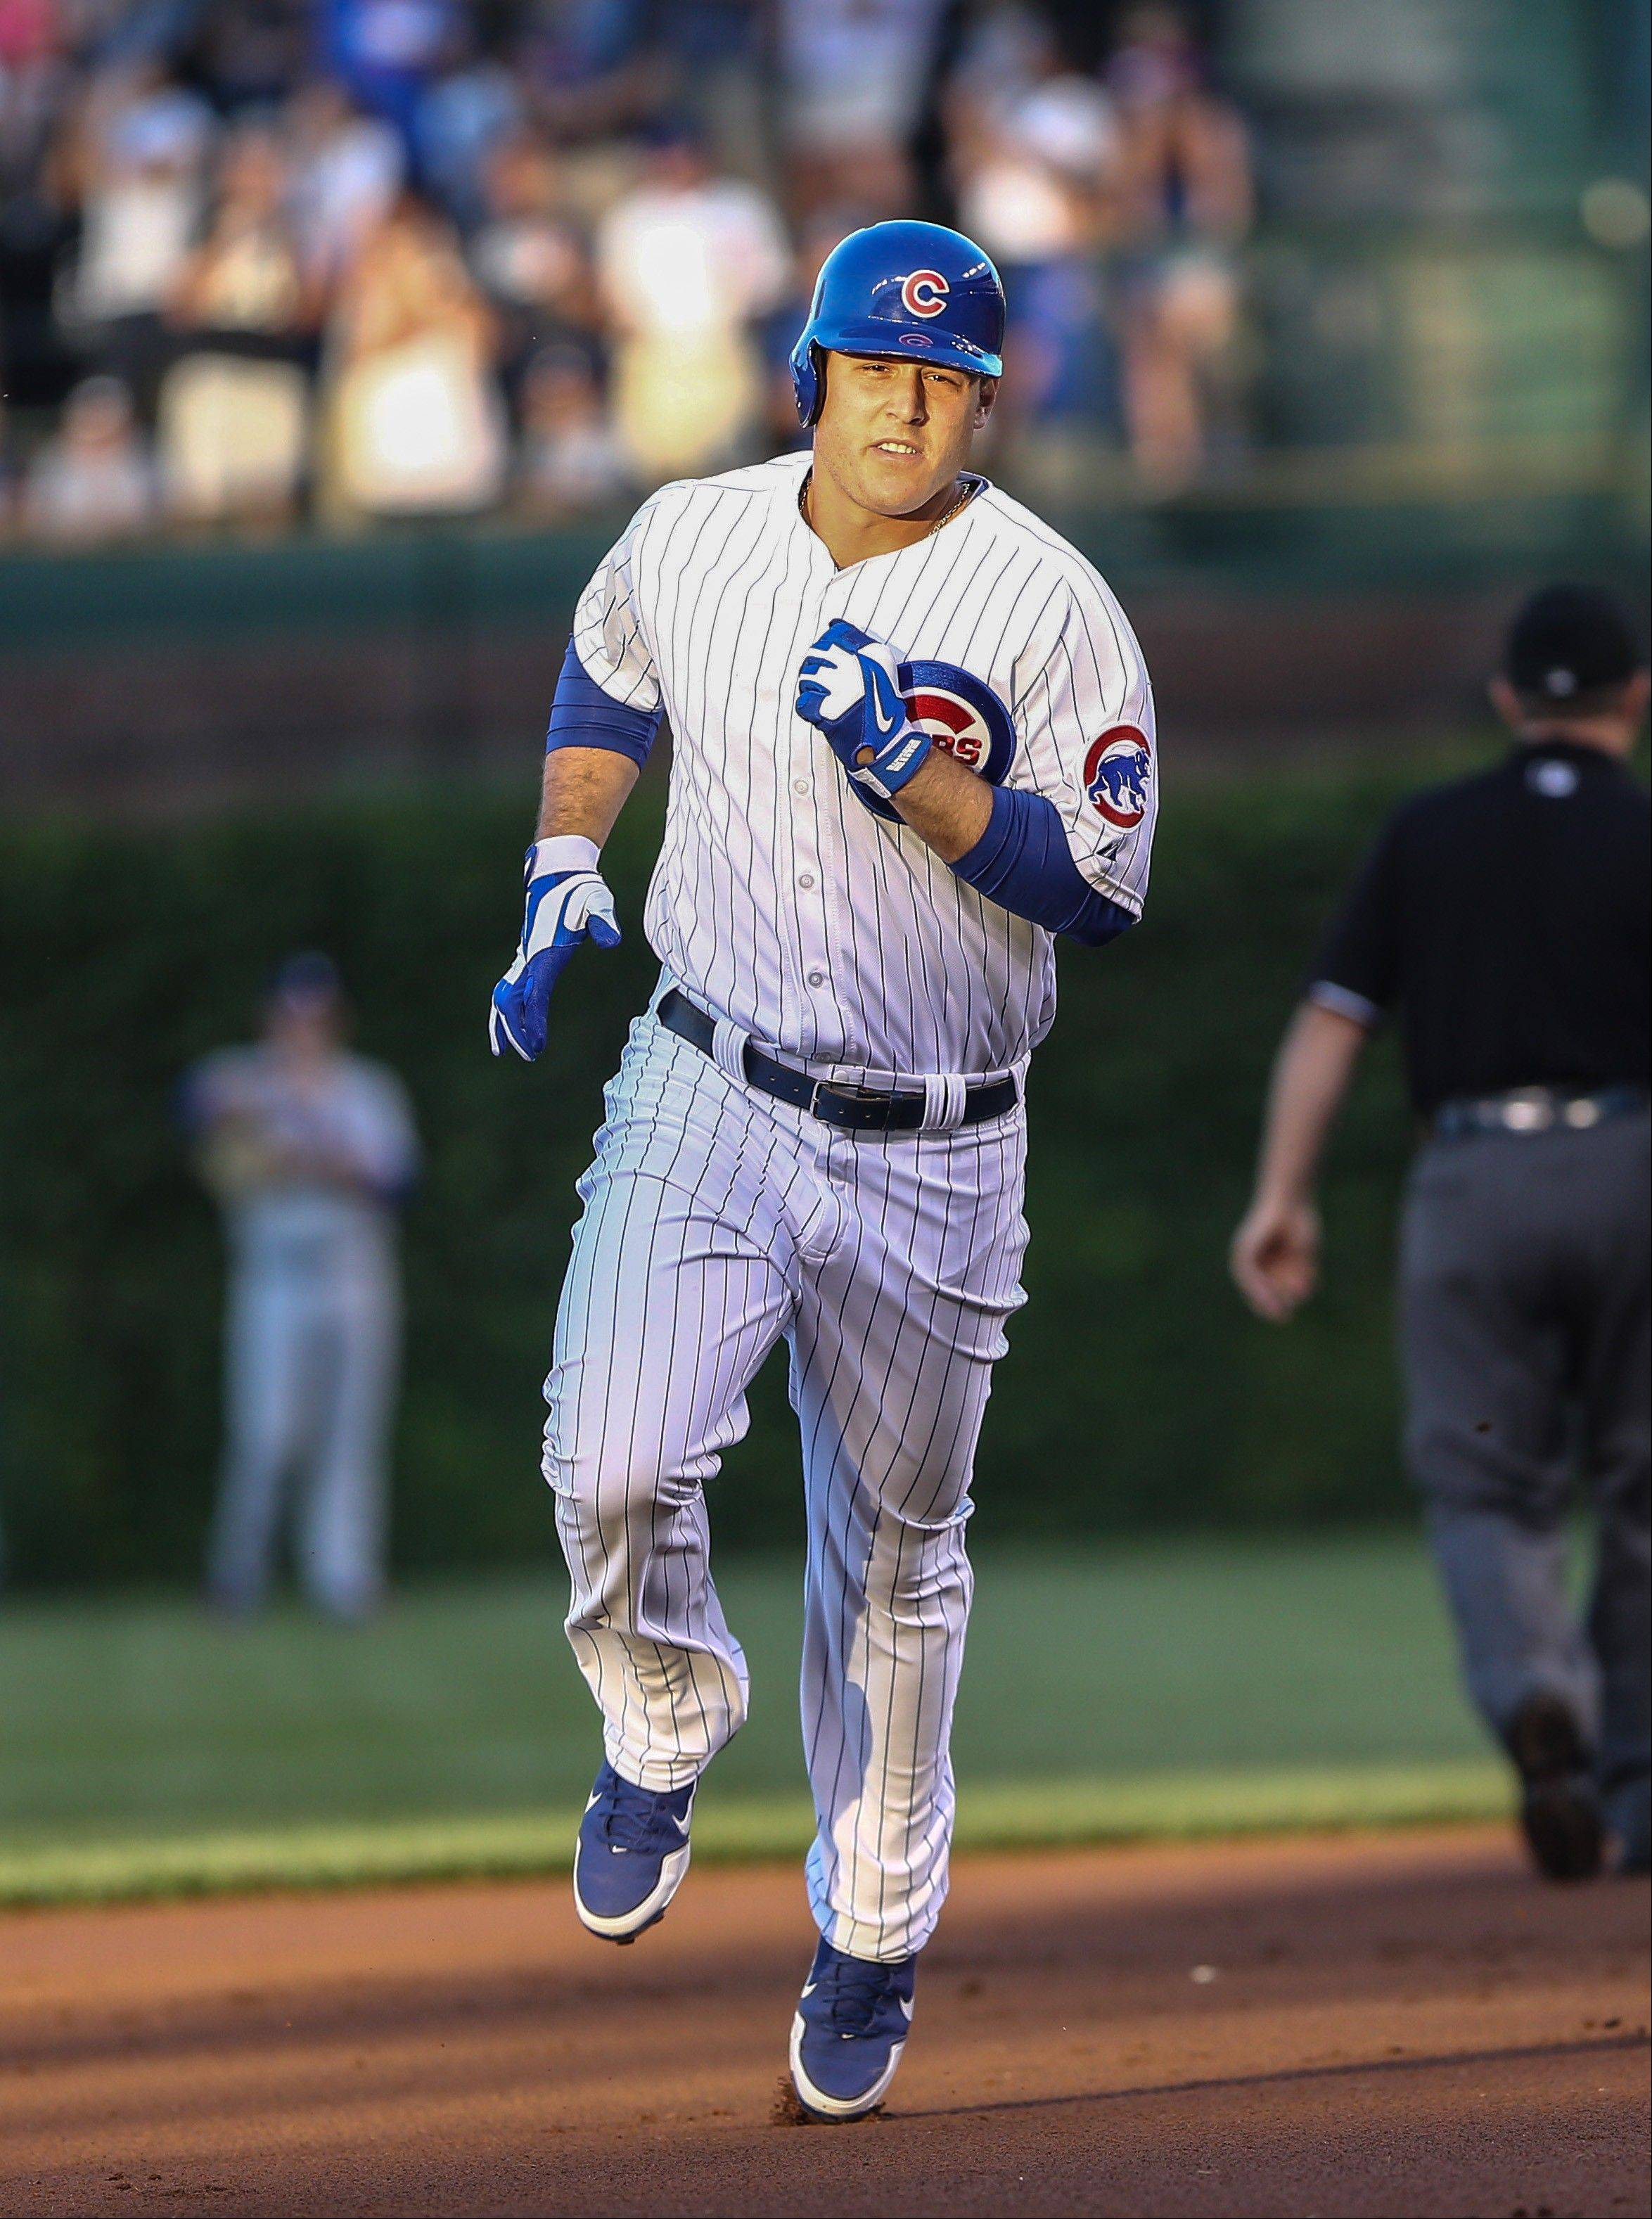 Chicago Cubs' Anthony Rizzo runs the bases after hitting a solo home run in the first inning against the Los Angeles Dodgers in a baseball game in Chicago on Thursday, Aug. 1, 2013. (AP Photo/Charles Cherney)